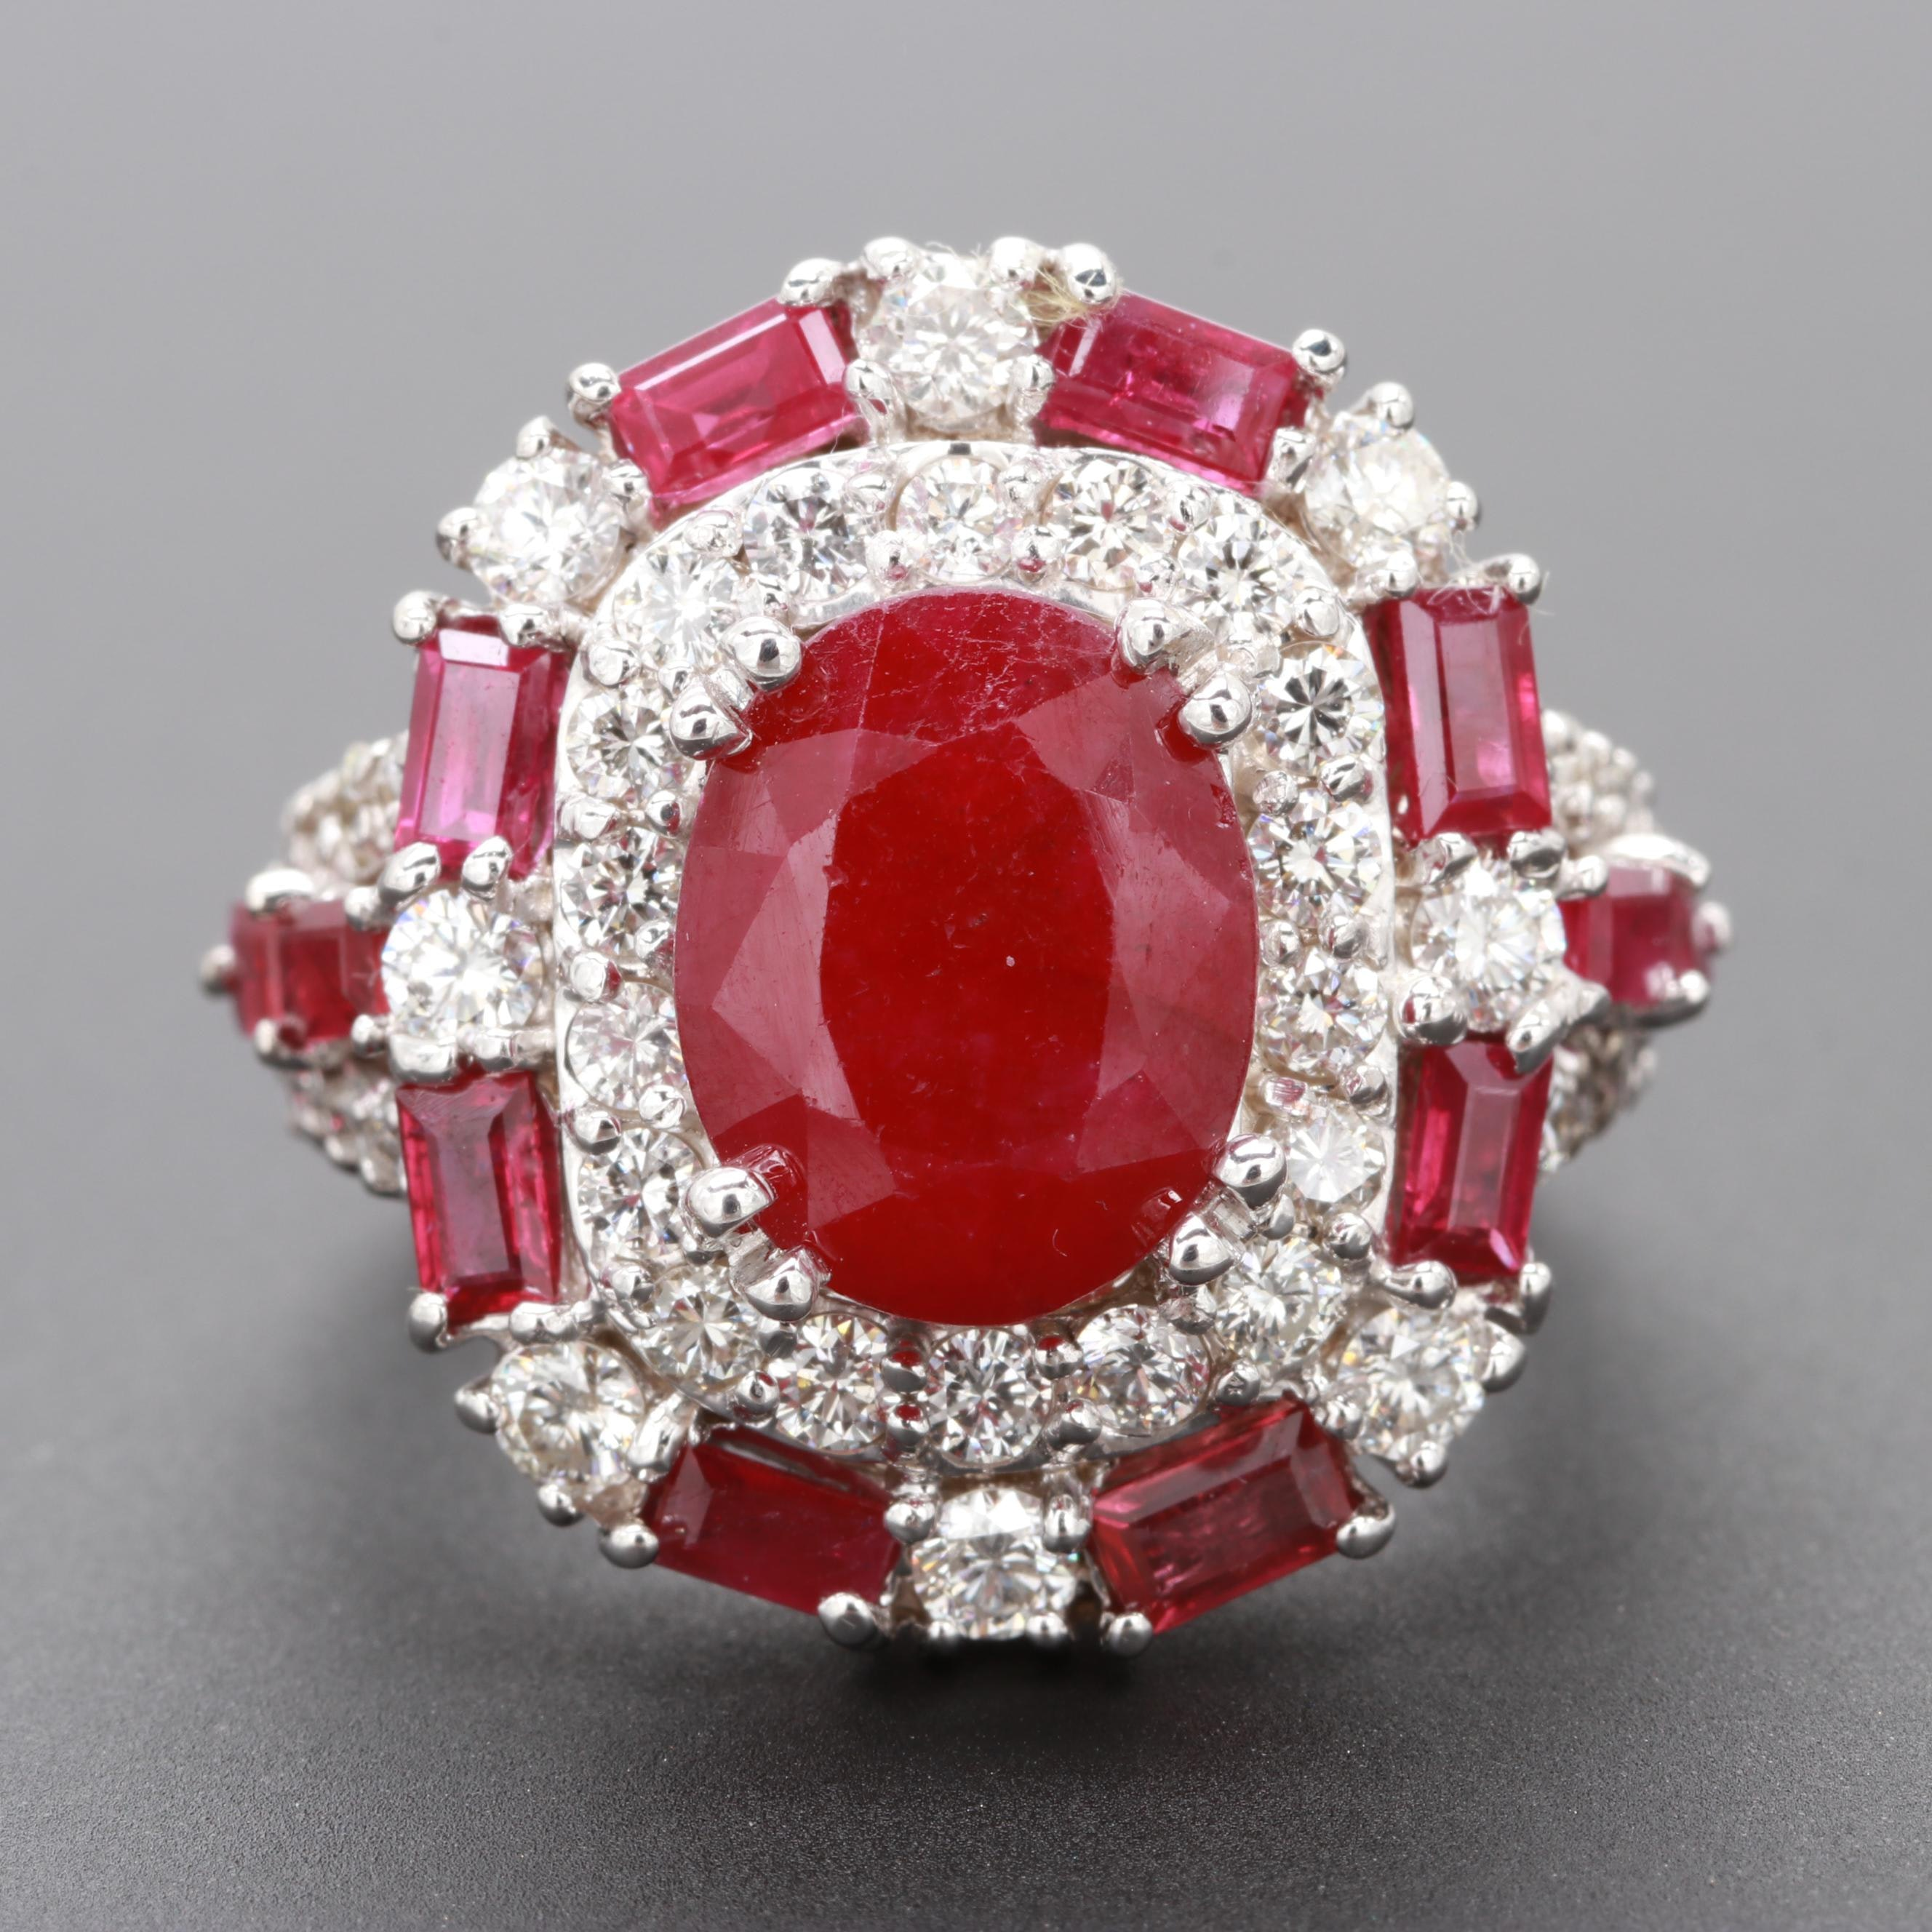 18K White Gold Ruby and 1.34 CTW Diamond Ring with 2.05 CT Center Stone